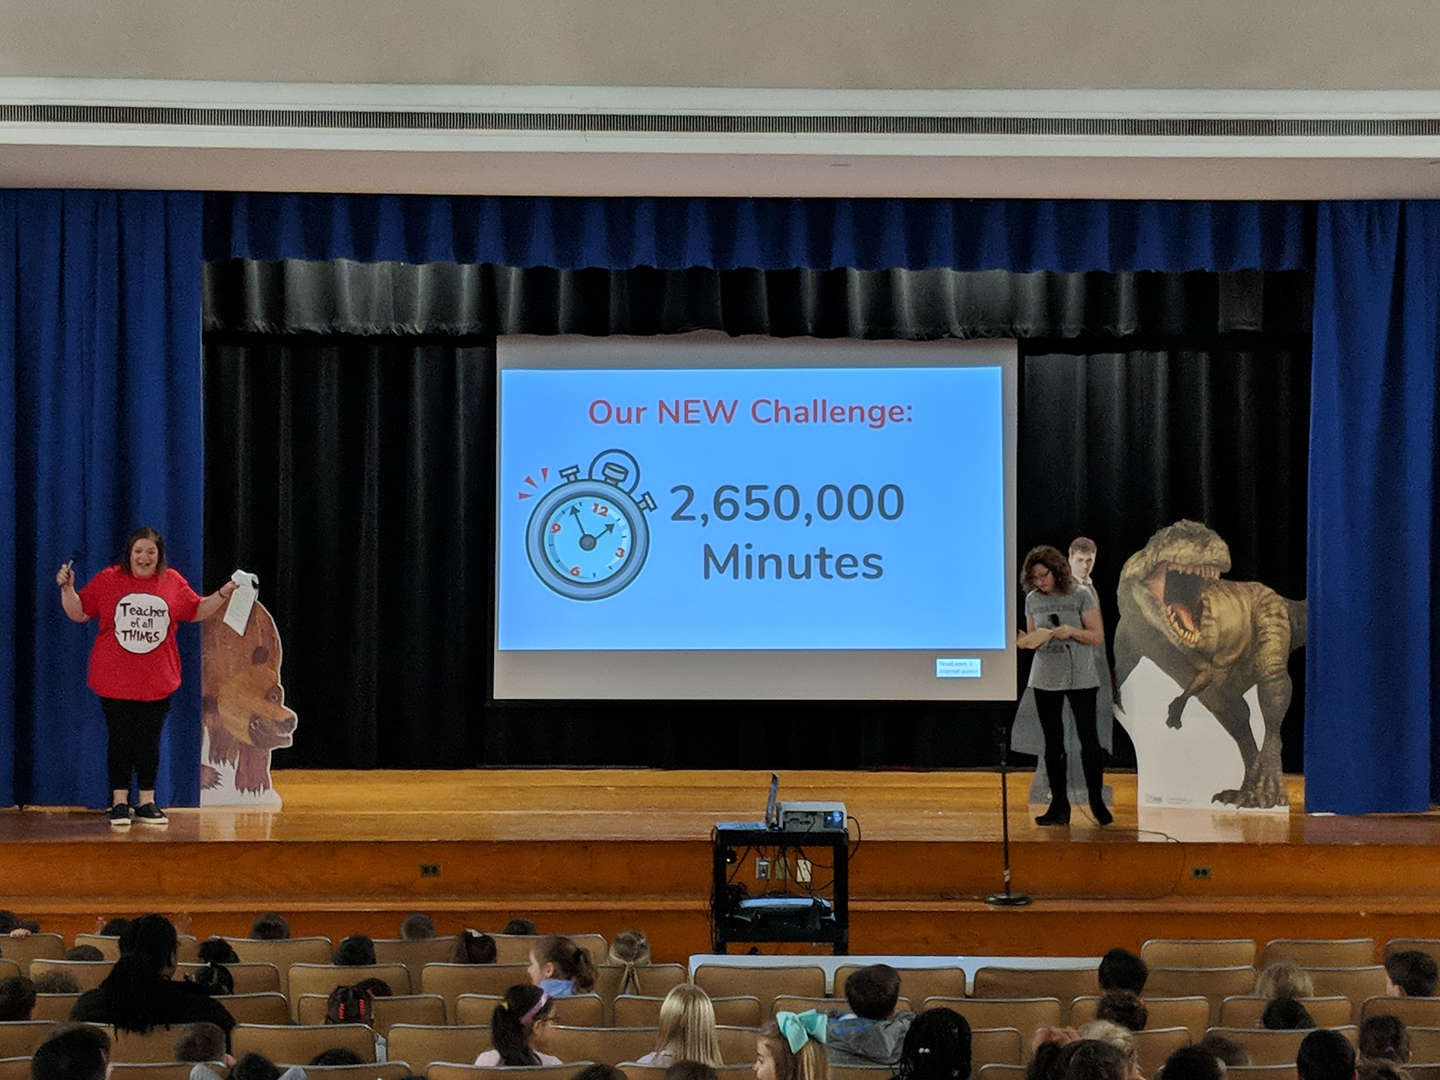 Teachers share the new goal of 2,650,000 minutes of reading.